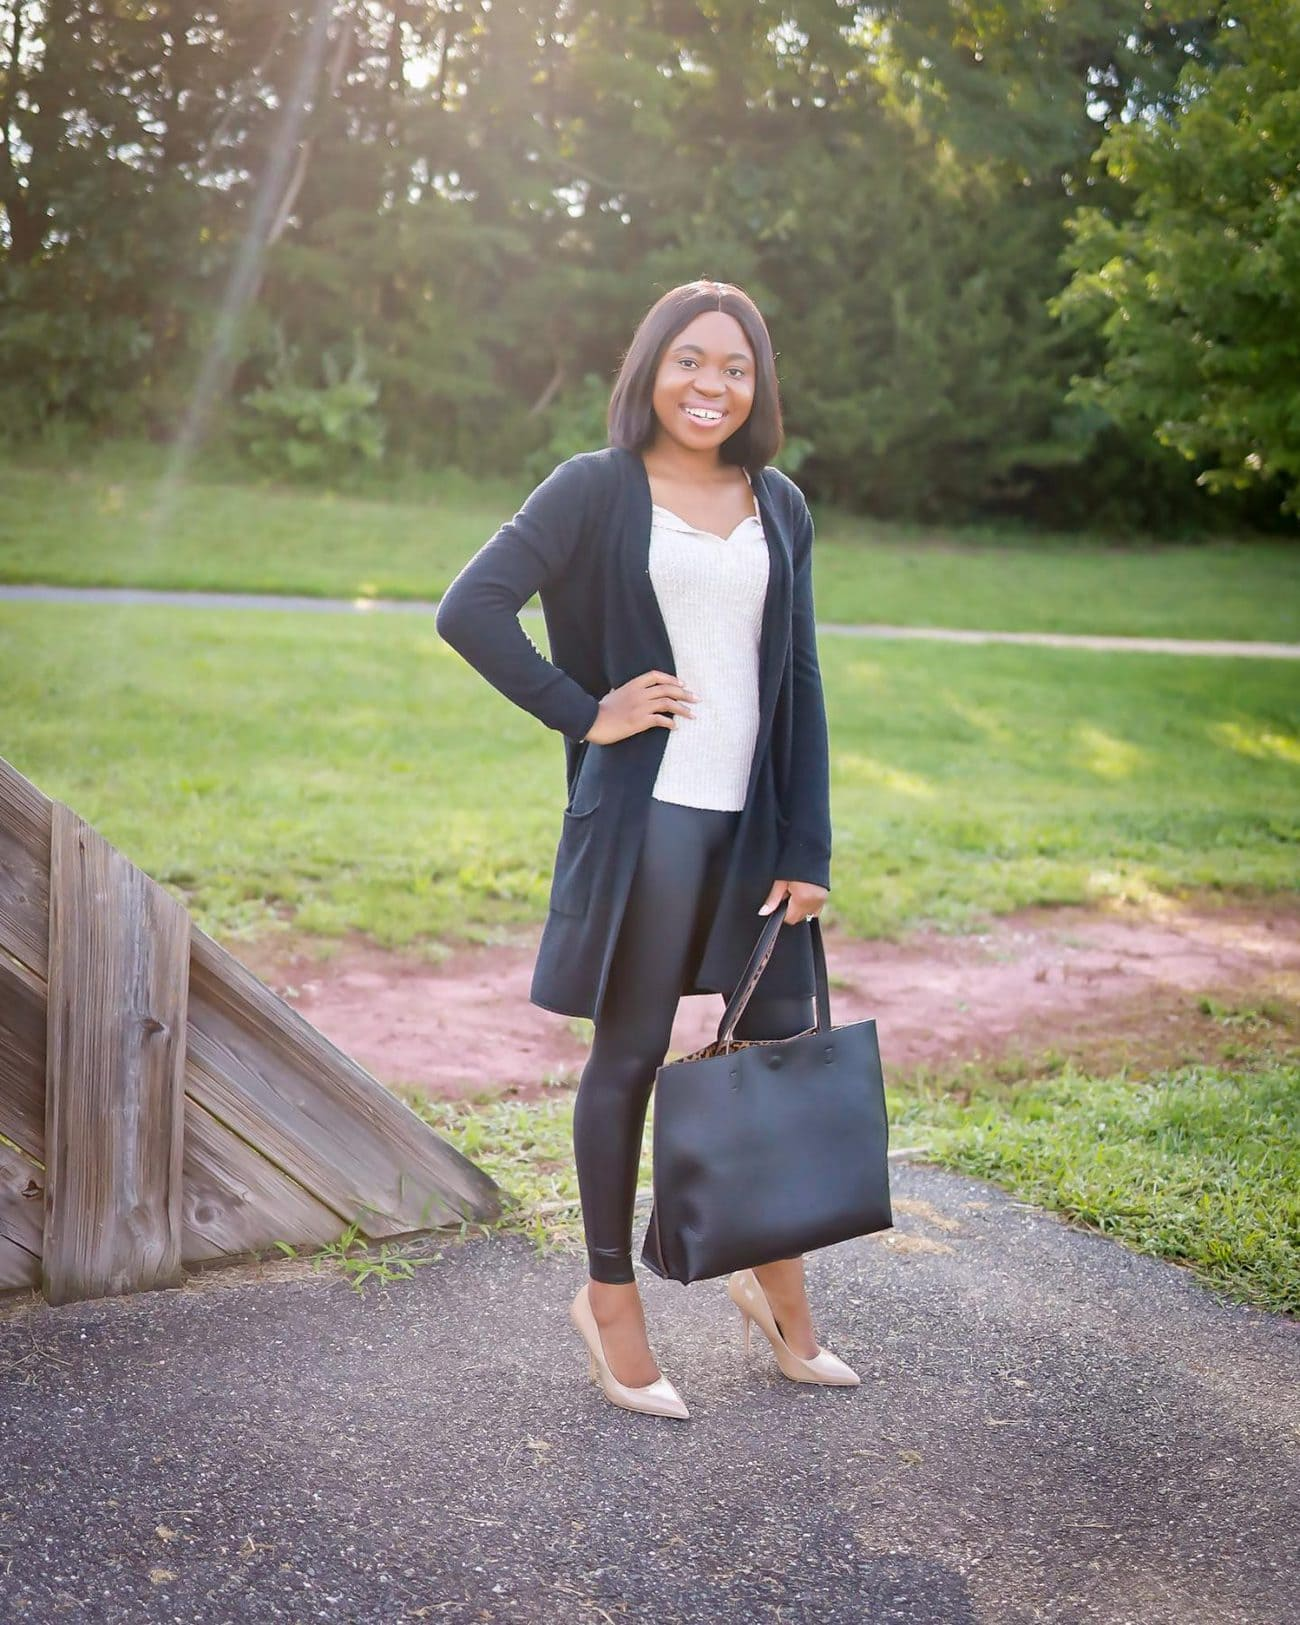 2020 Nordstrom Anniversary Sale blogger picks including the super hyped Spanx faux leather leggings and Barefoot Dreams CozyChic cardigan.